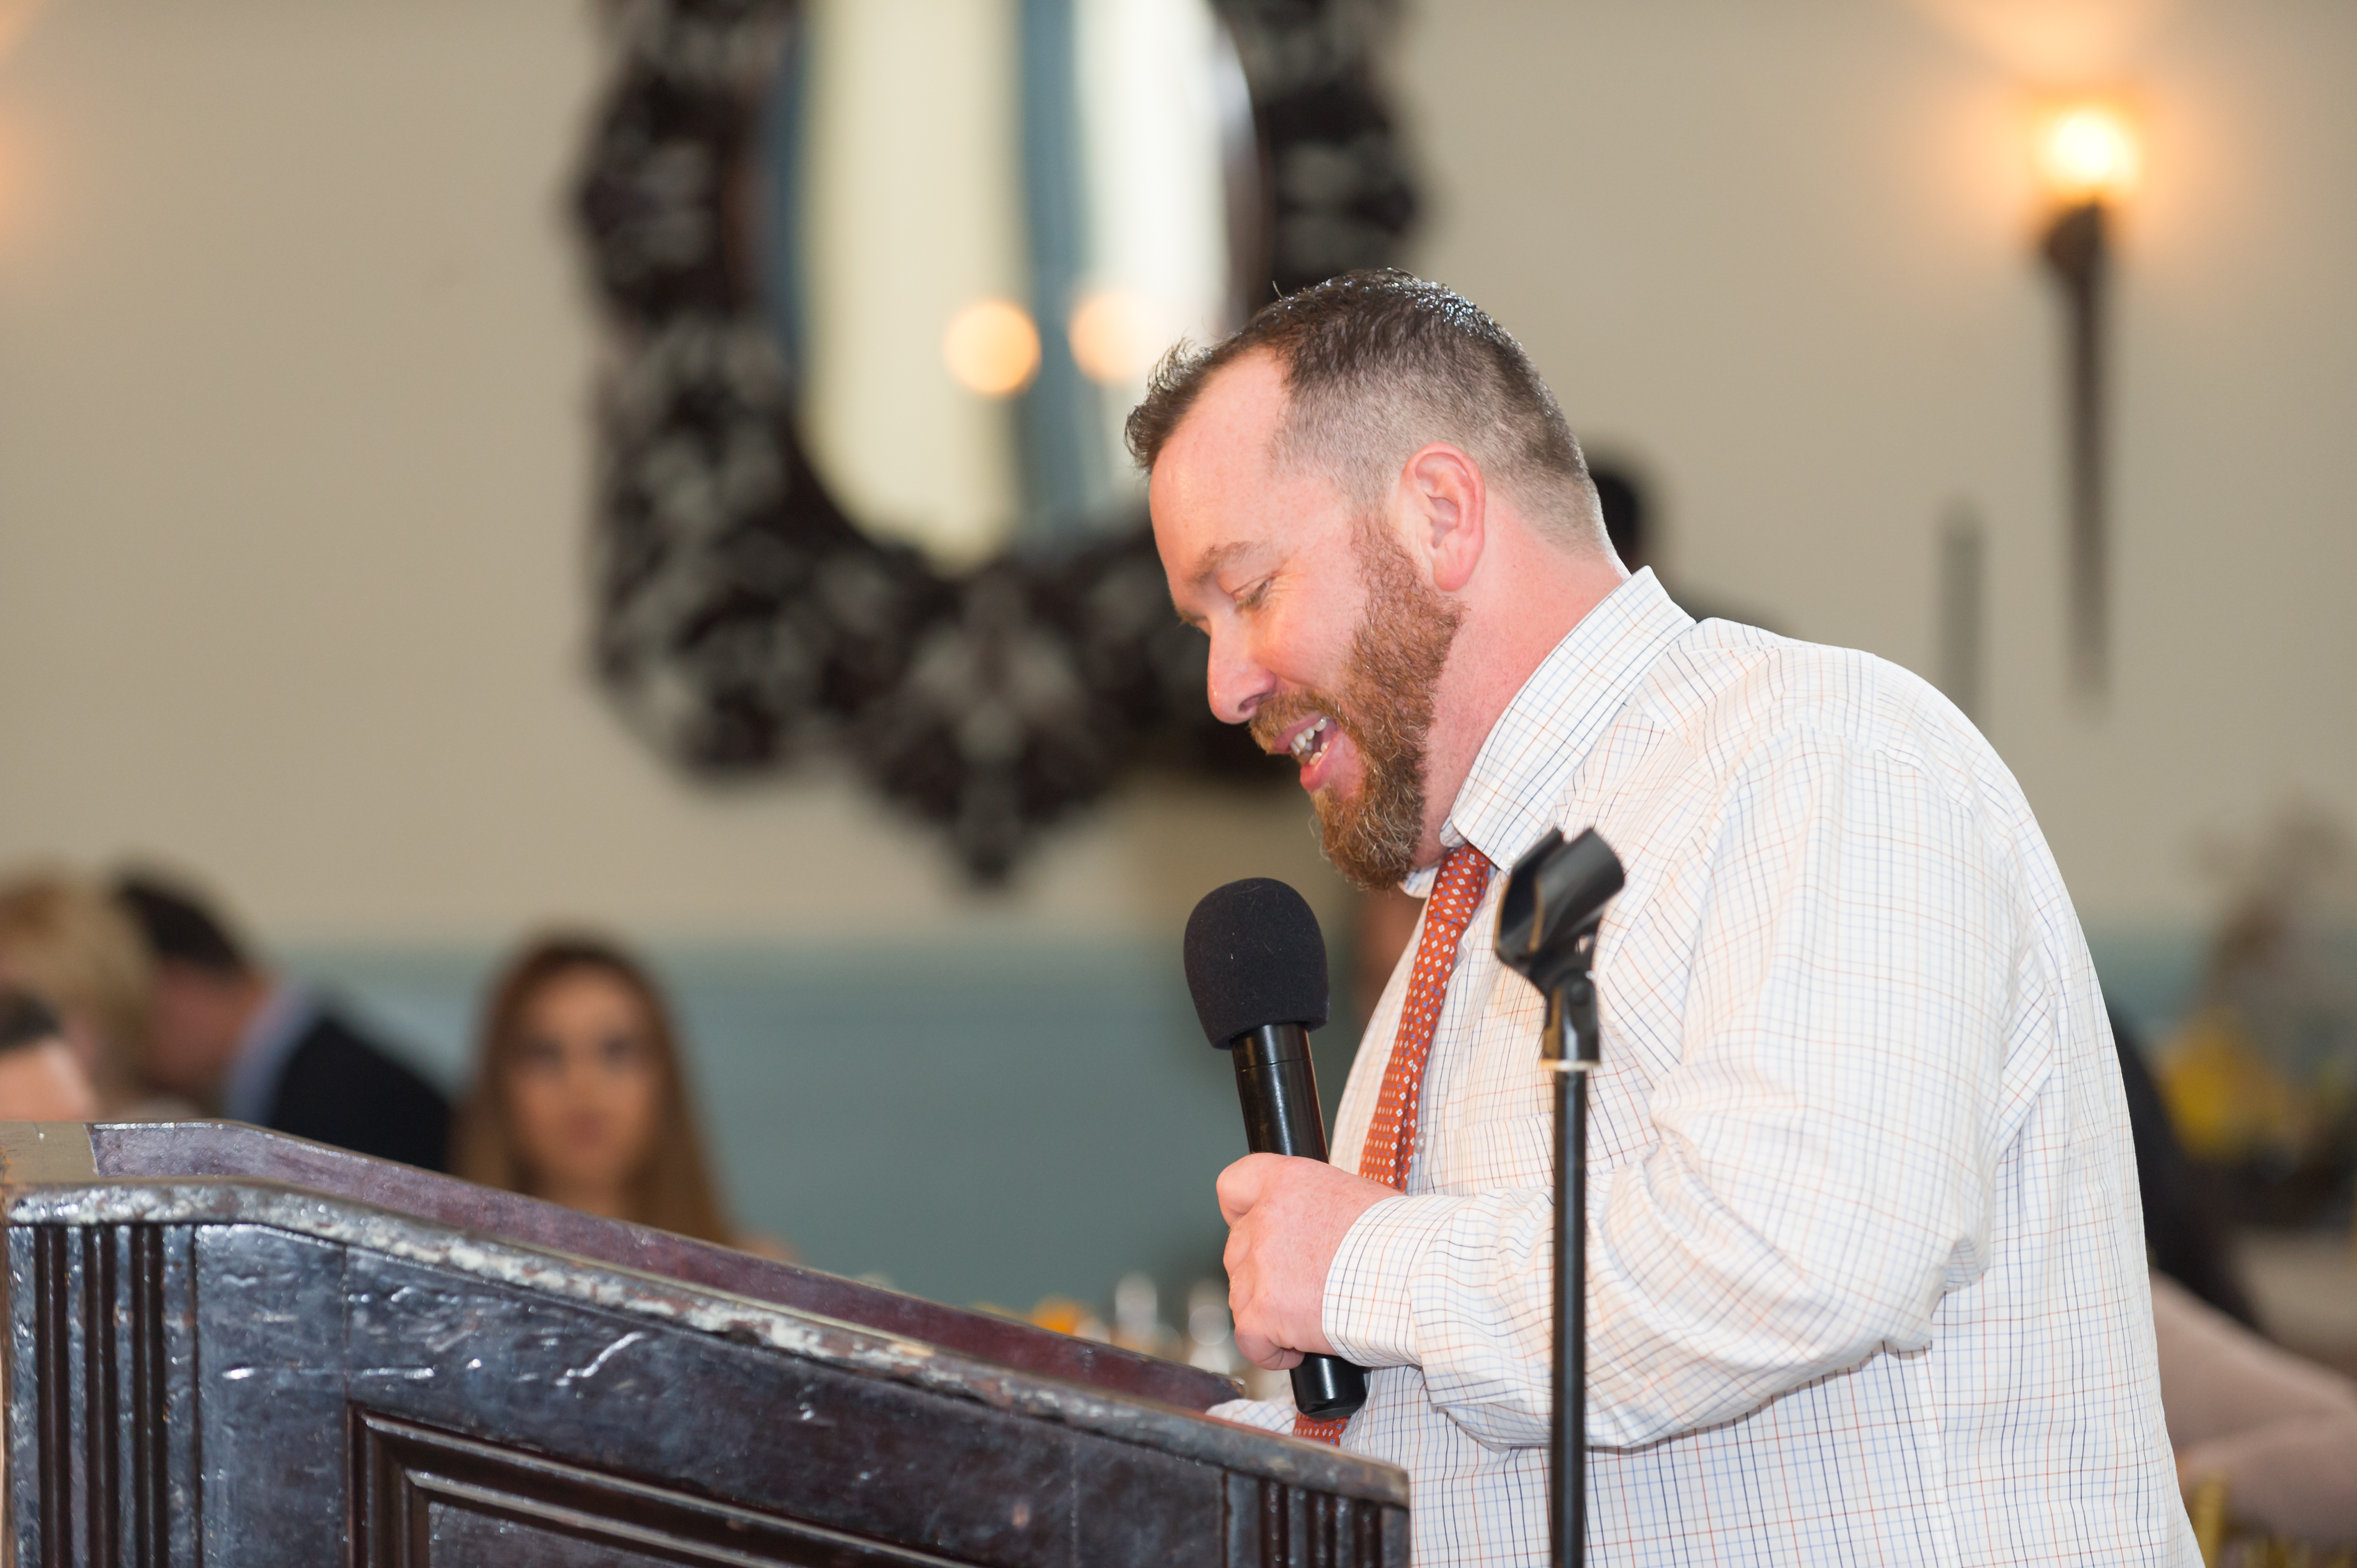 Liam Lillis gives the welcome speech at the 7th Annual FIGHT C. DIFF Gala